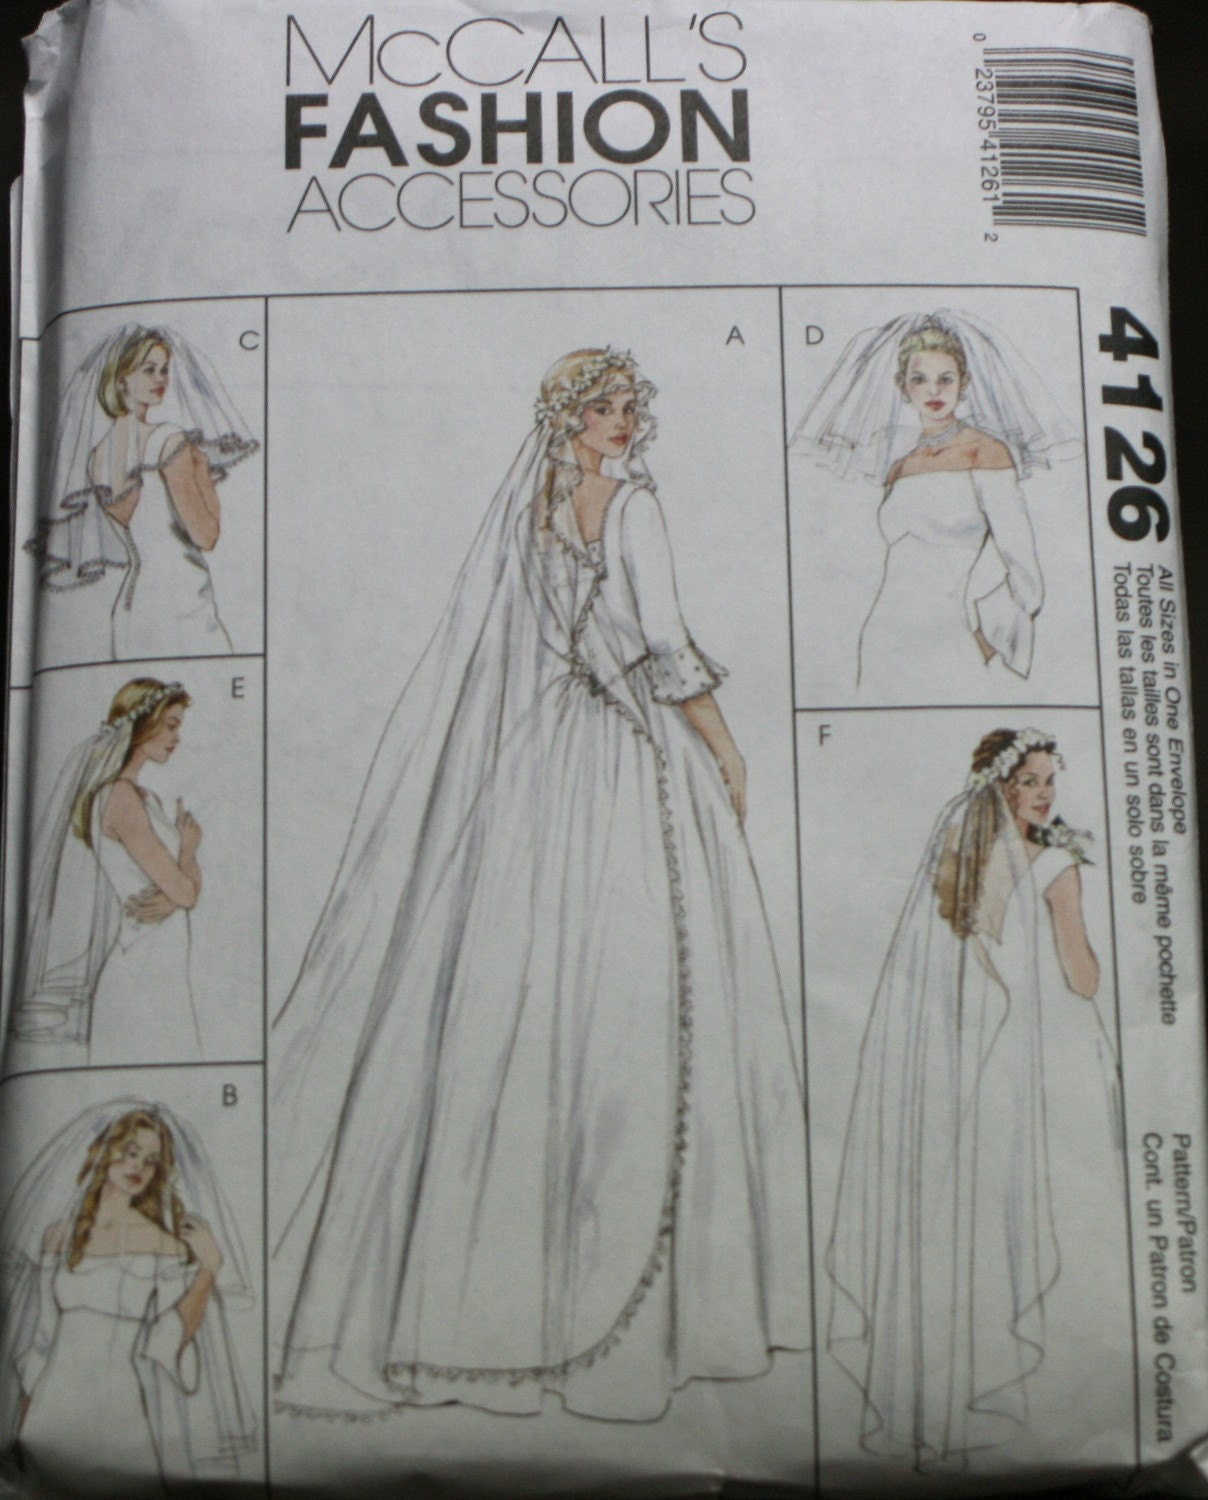 Wedding Veils And Headpieces Patterns: 4126 McCall's Bridal Wedding Veil Sewing Pattern New/Uncut